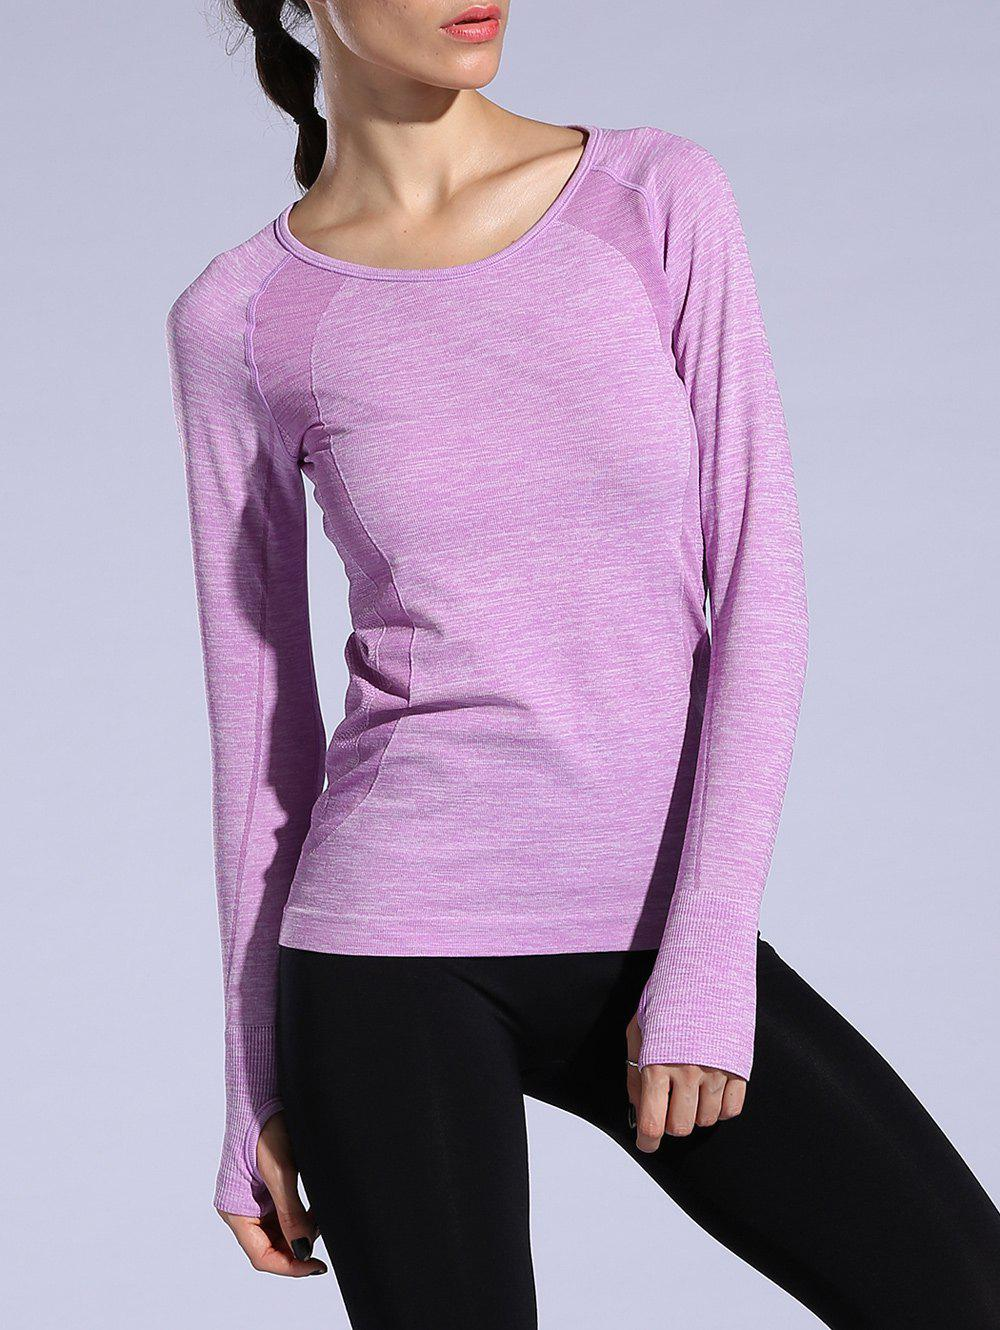 T-shirt sportif Heathered Dry-rapide - Violet Clair M